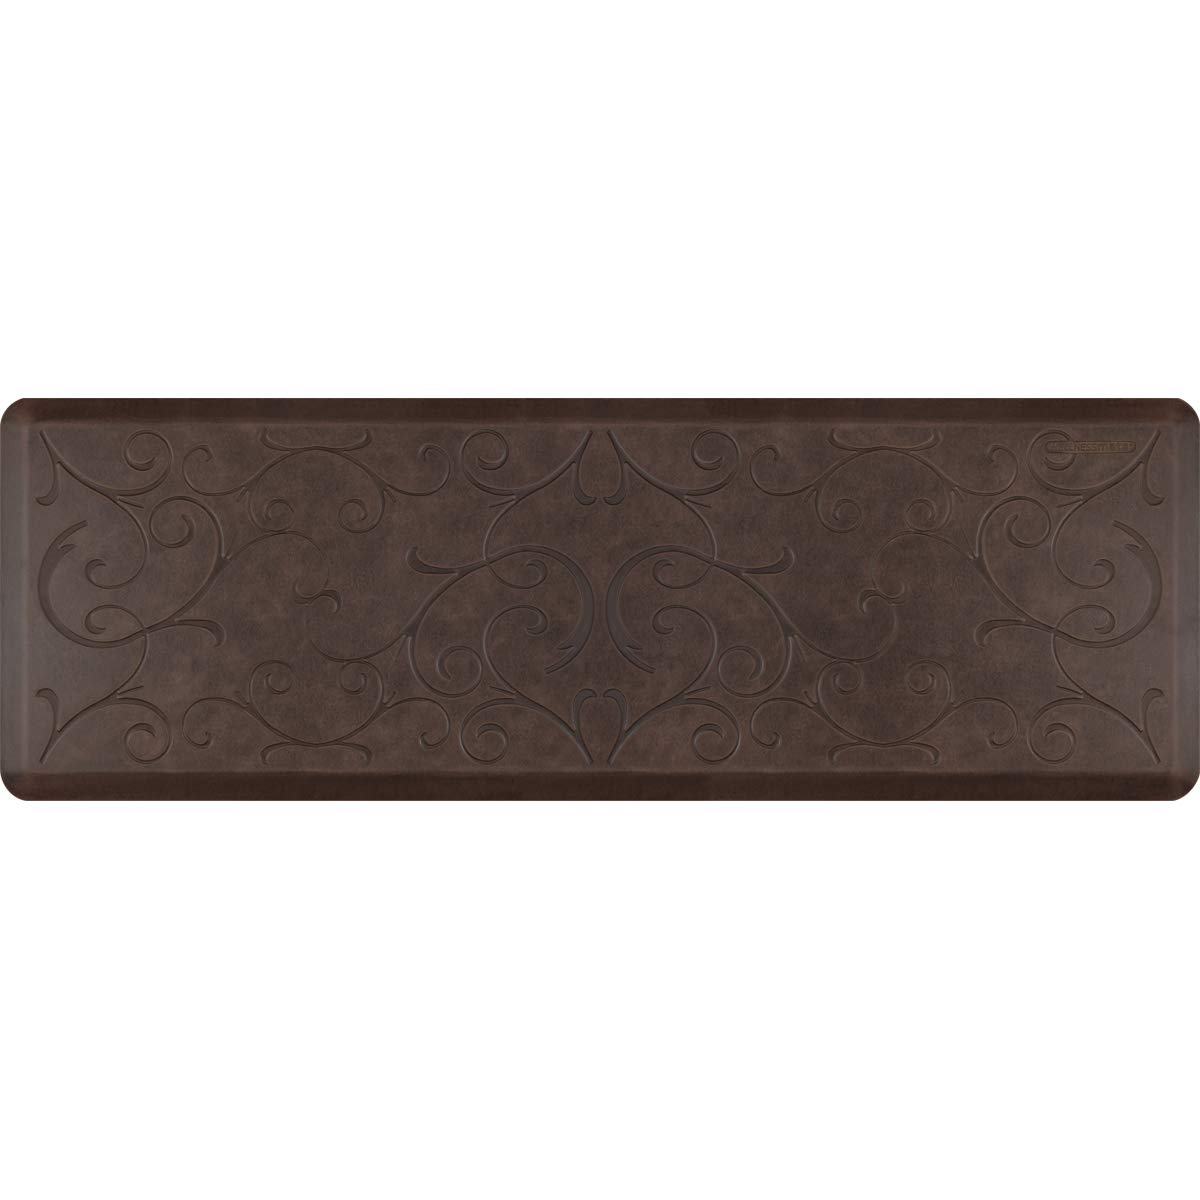 WellnessMats Anti-Fatigue Bella Motif Mat, 72 Inch by 24 Inch, Antique Dark